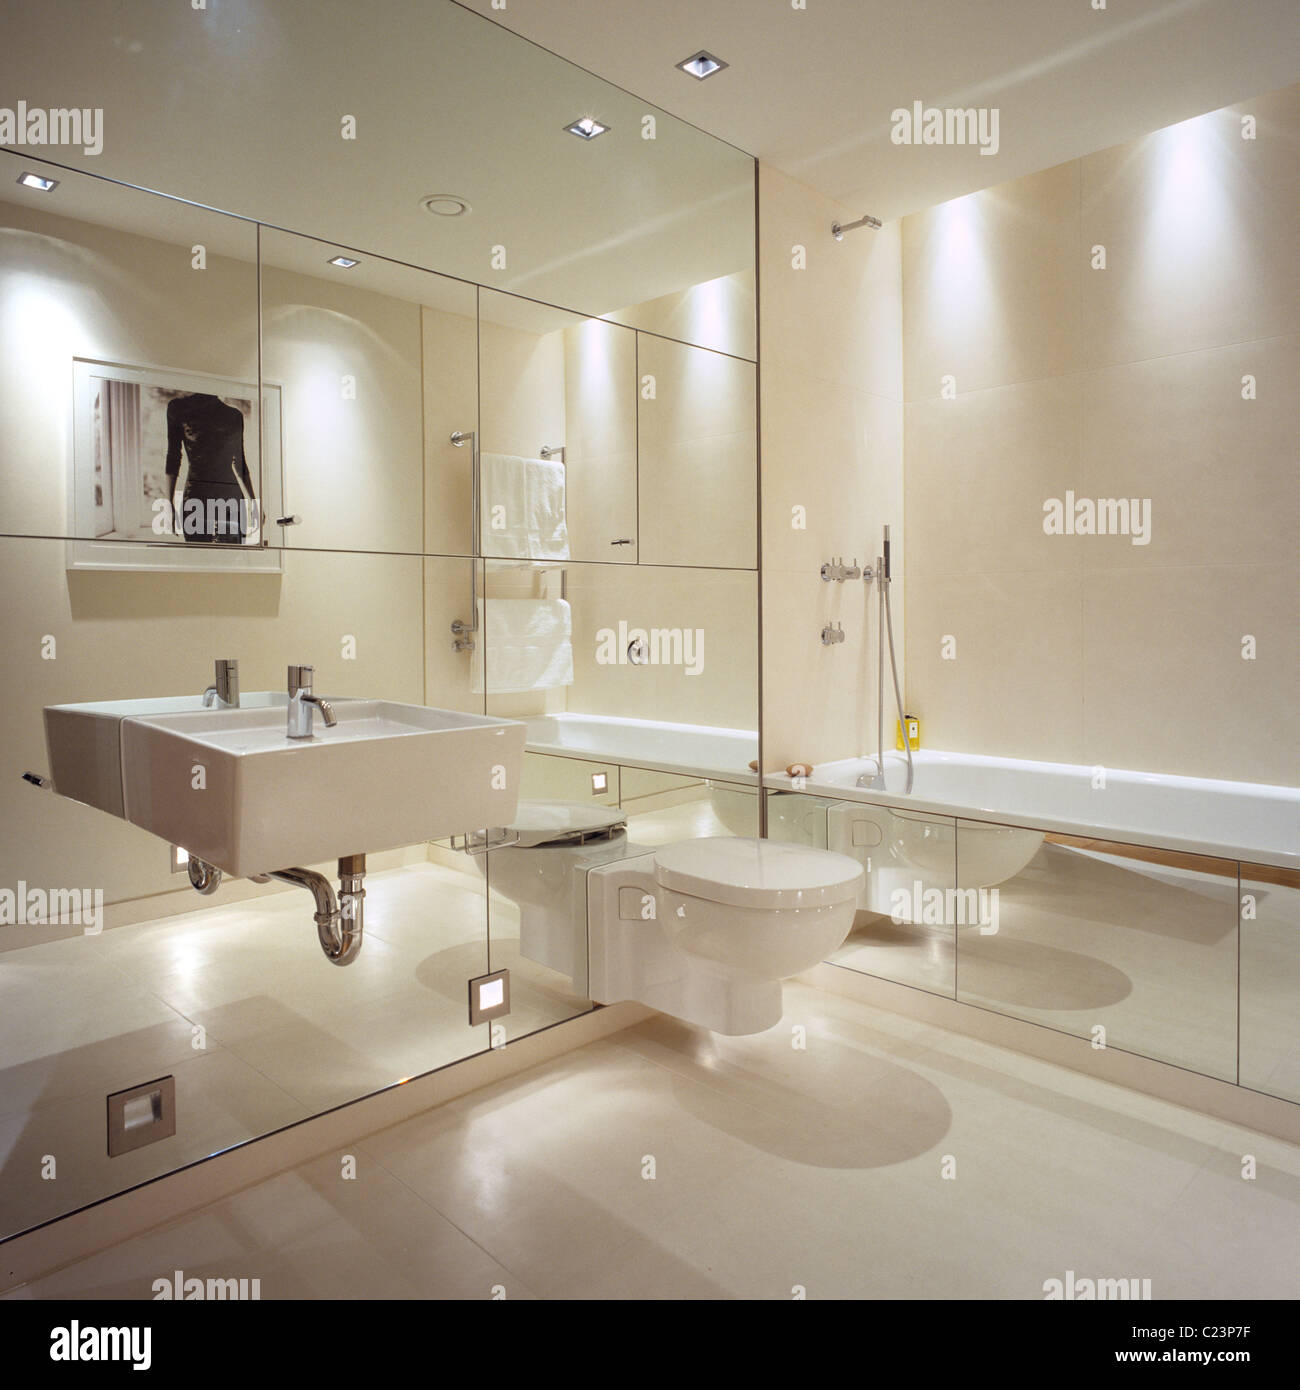 Attractive Mirrored Wall In Contemporary Bathroom With Interior Design By Todhunter  Earle Part 16